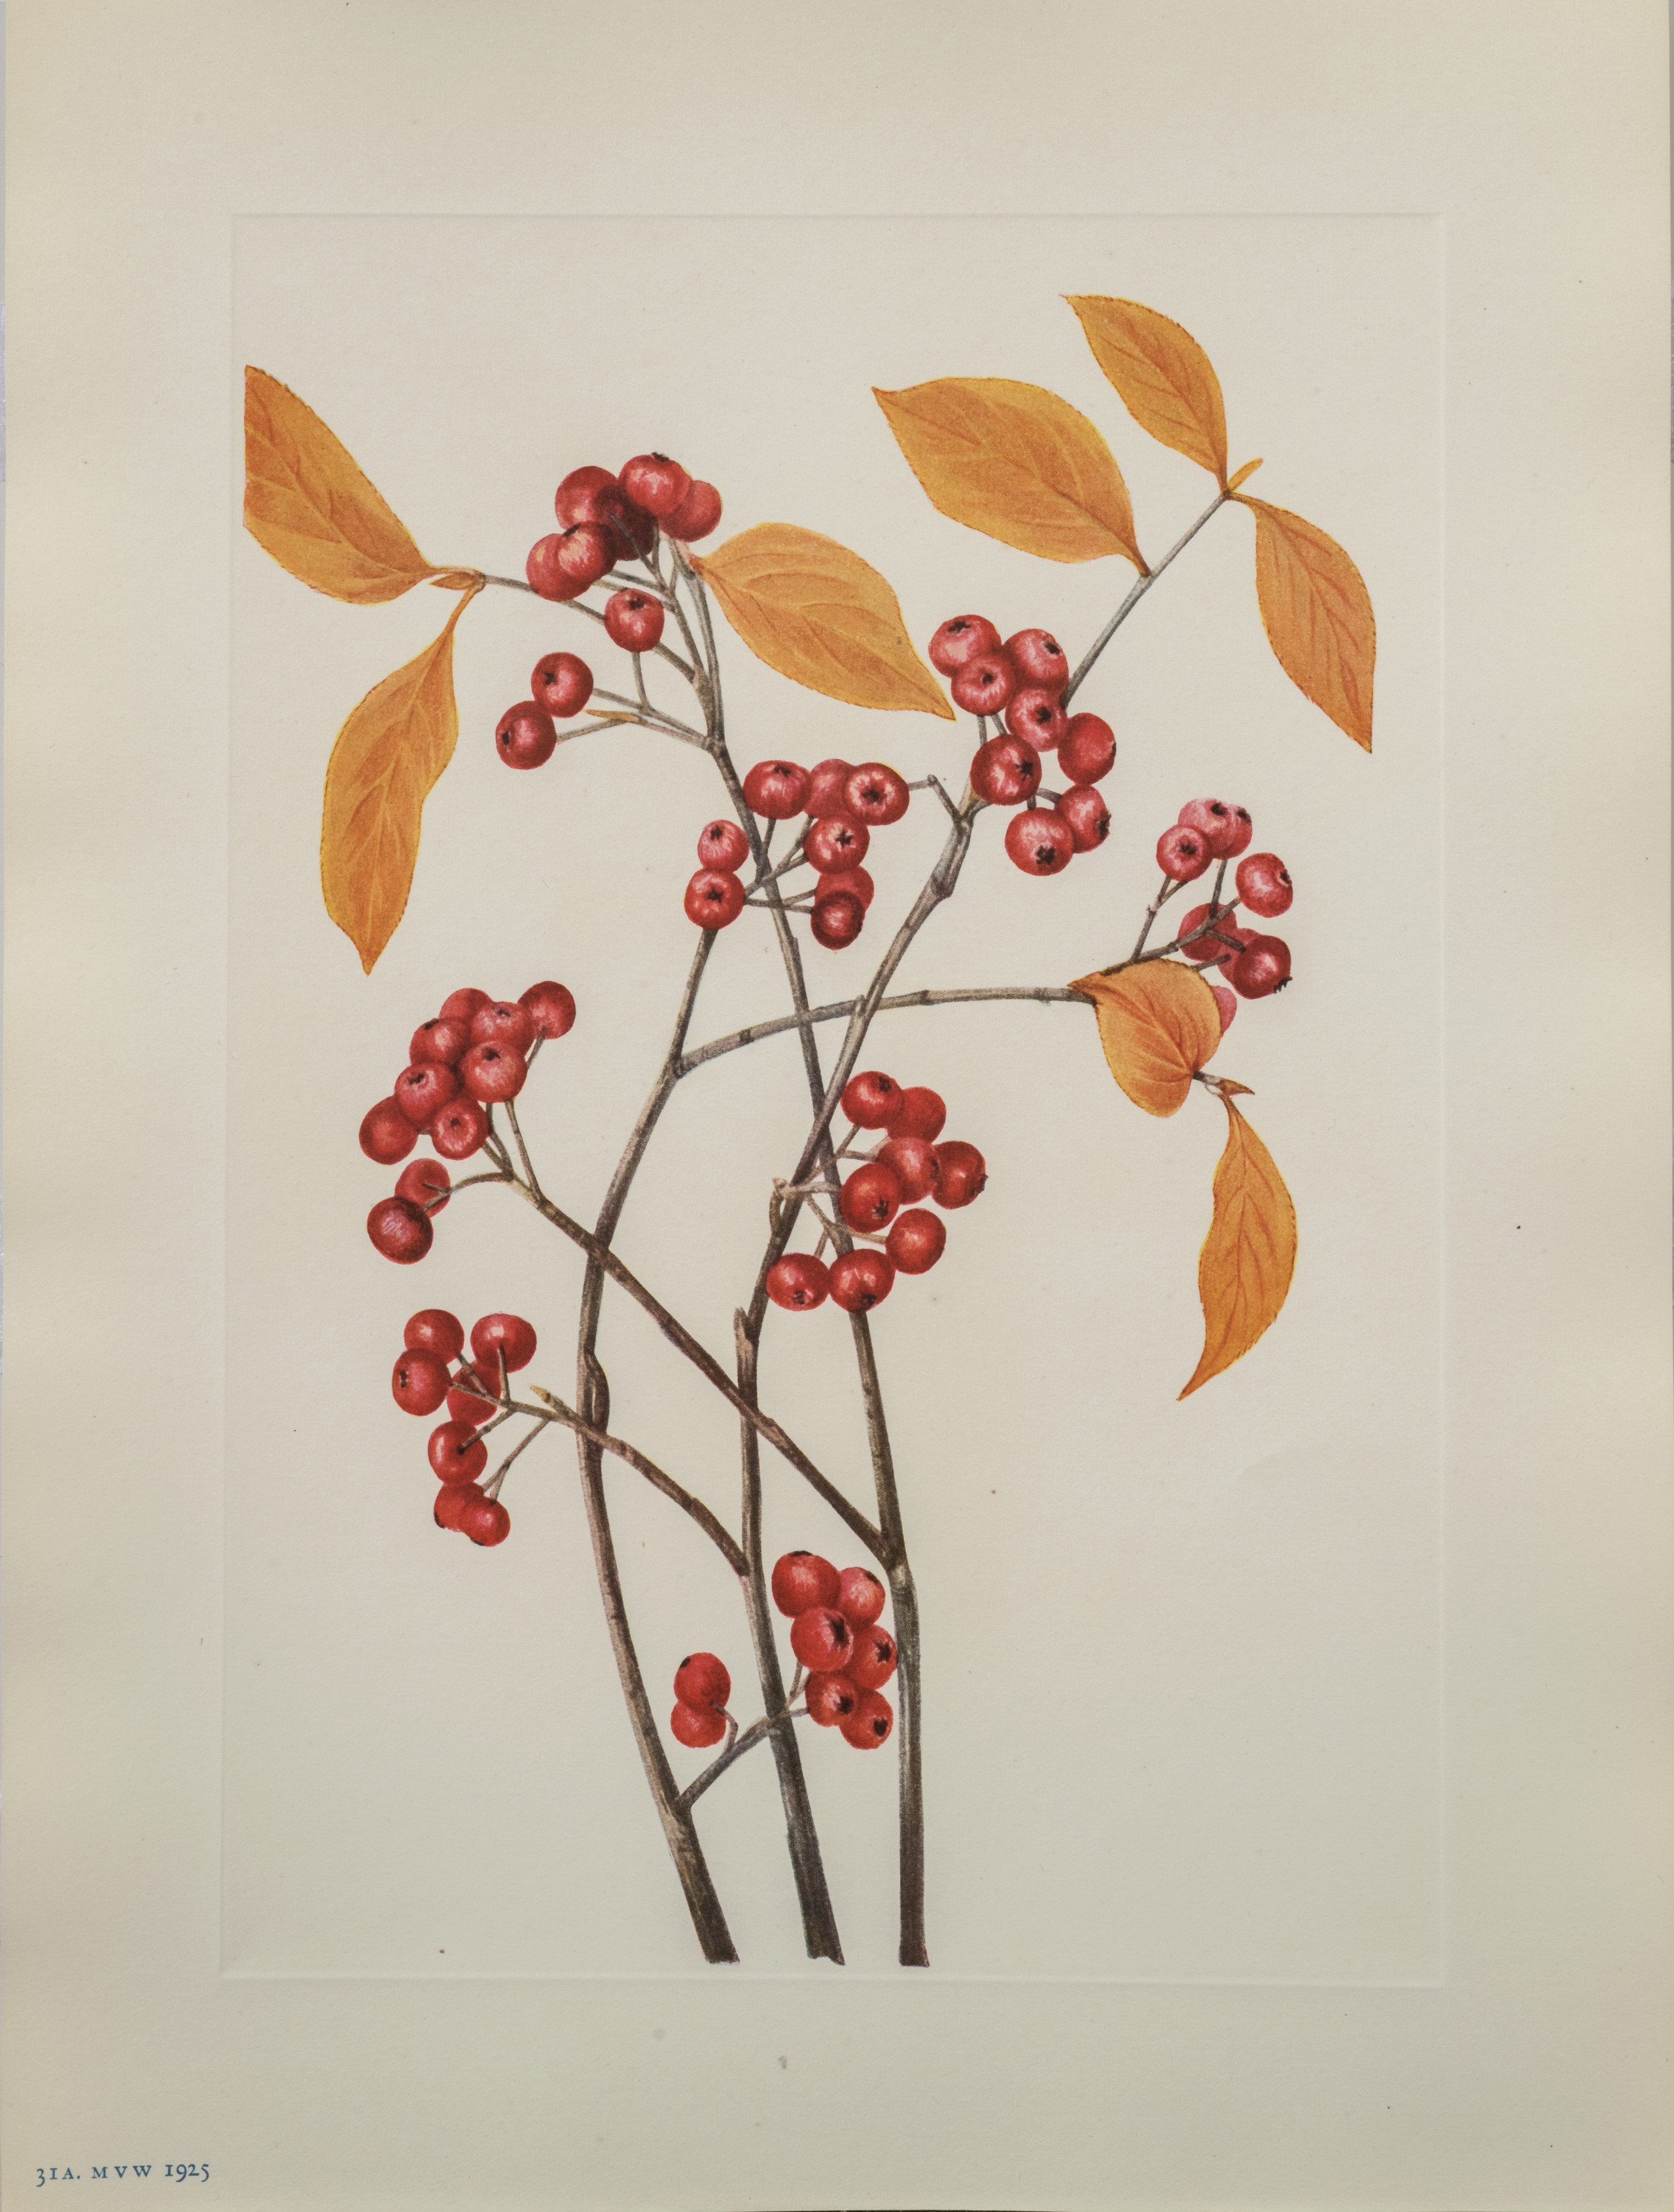 Pods of red berries and orange leaves of the red chokeberry plant are rendered in careful detail against a white background.